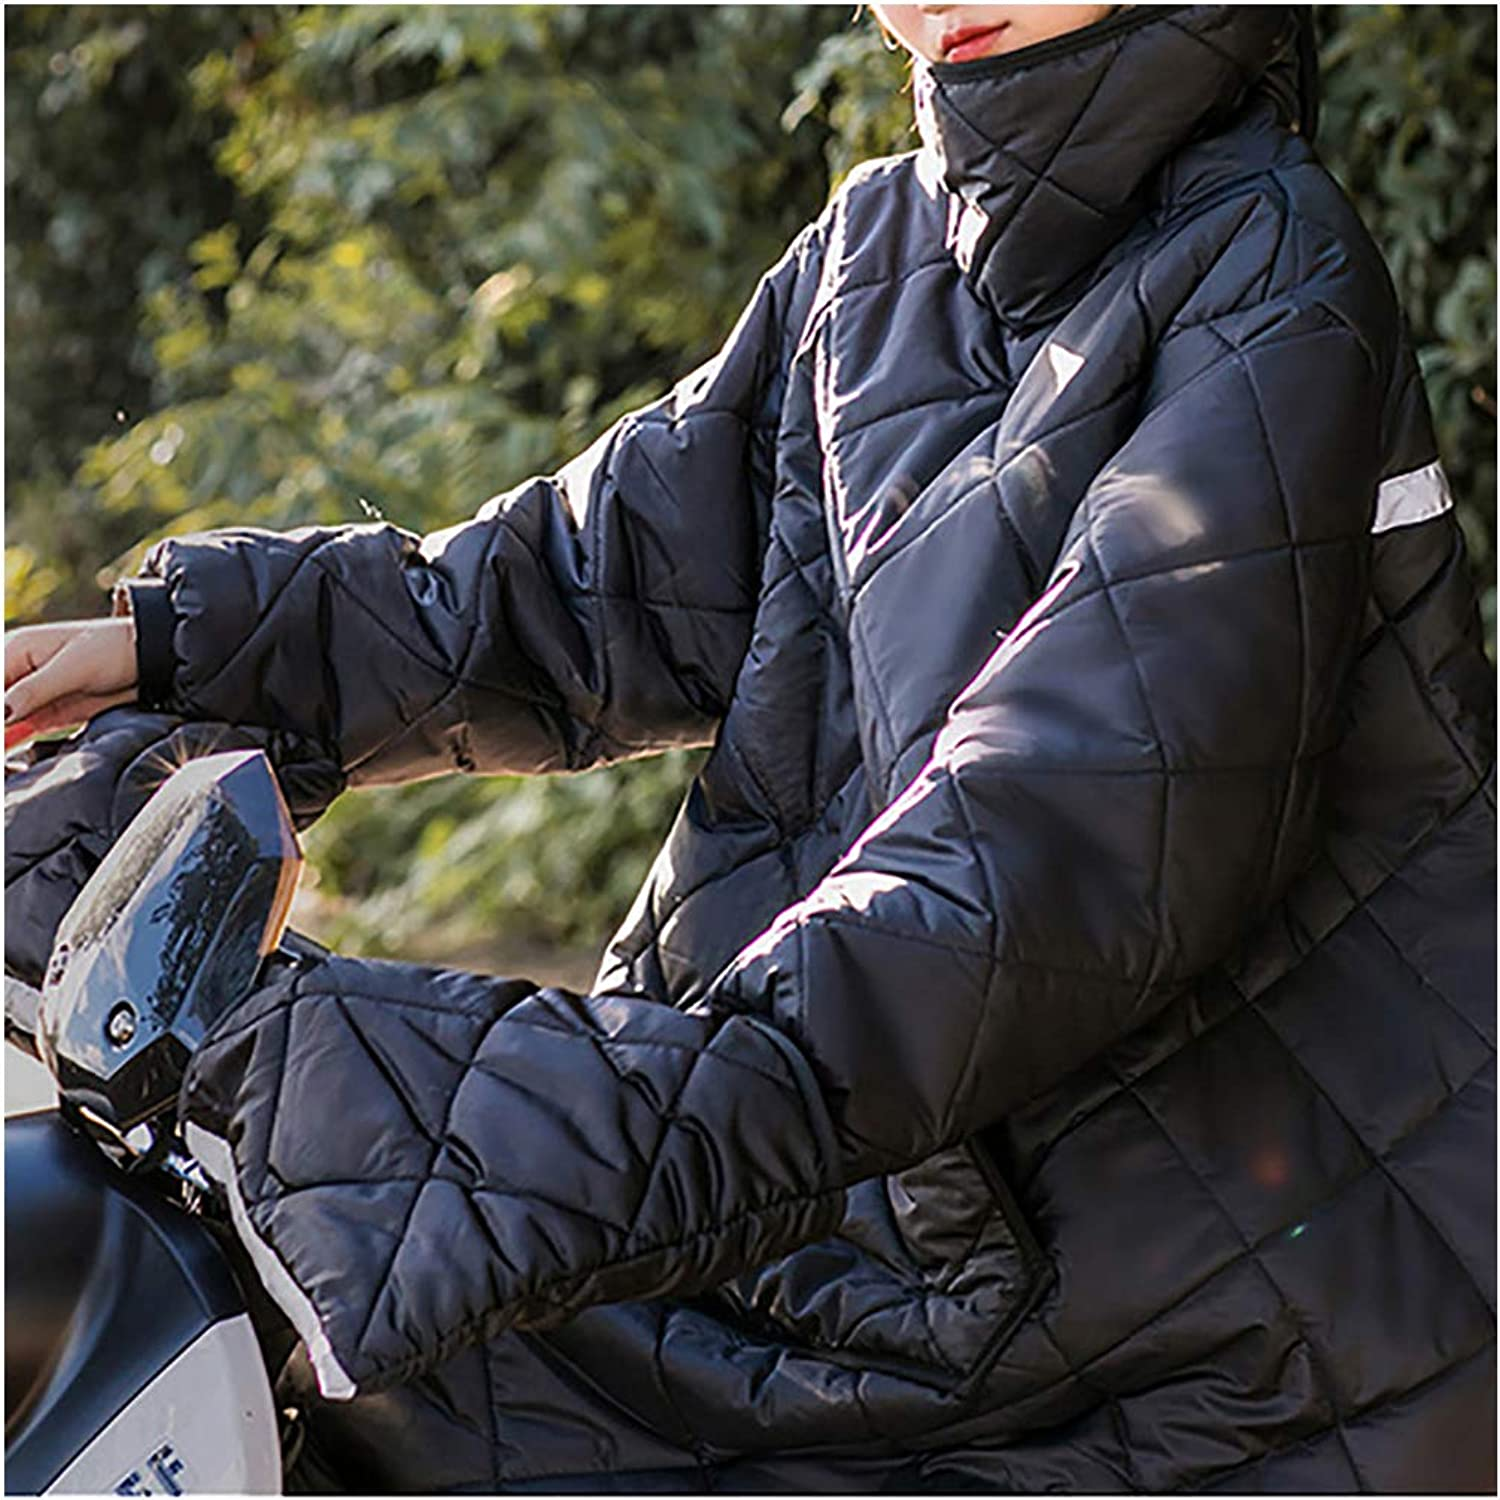 Electric Car Windshield, Winter Battery Car Windshield Cover Winter Clothes, Knee Pads Thick Warm and Velvet Motorcycle